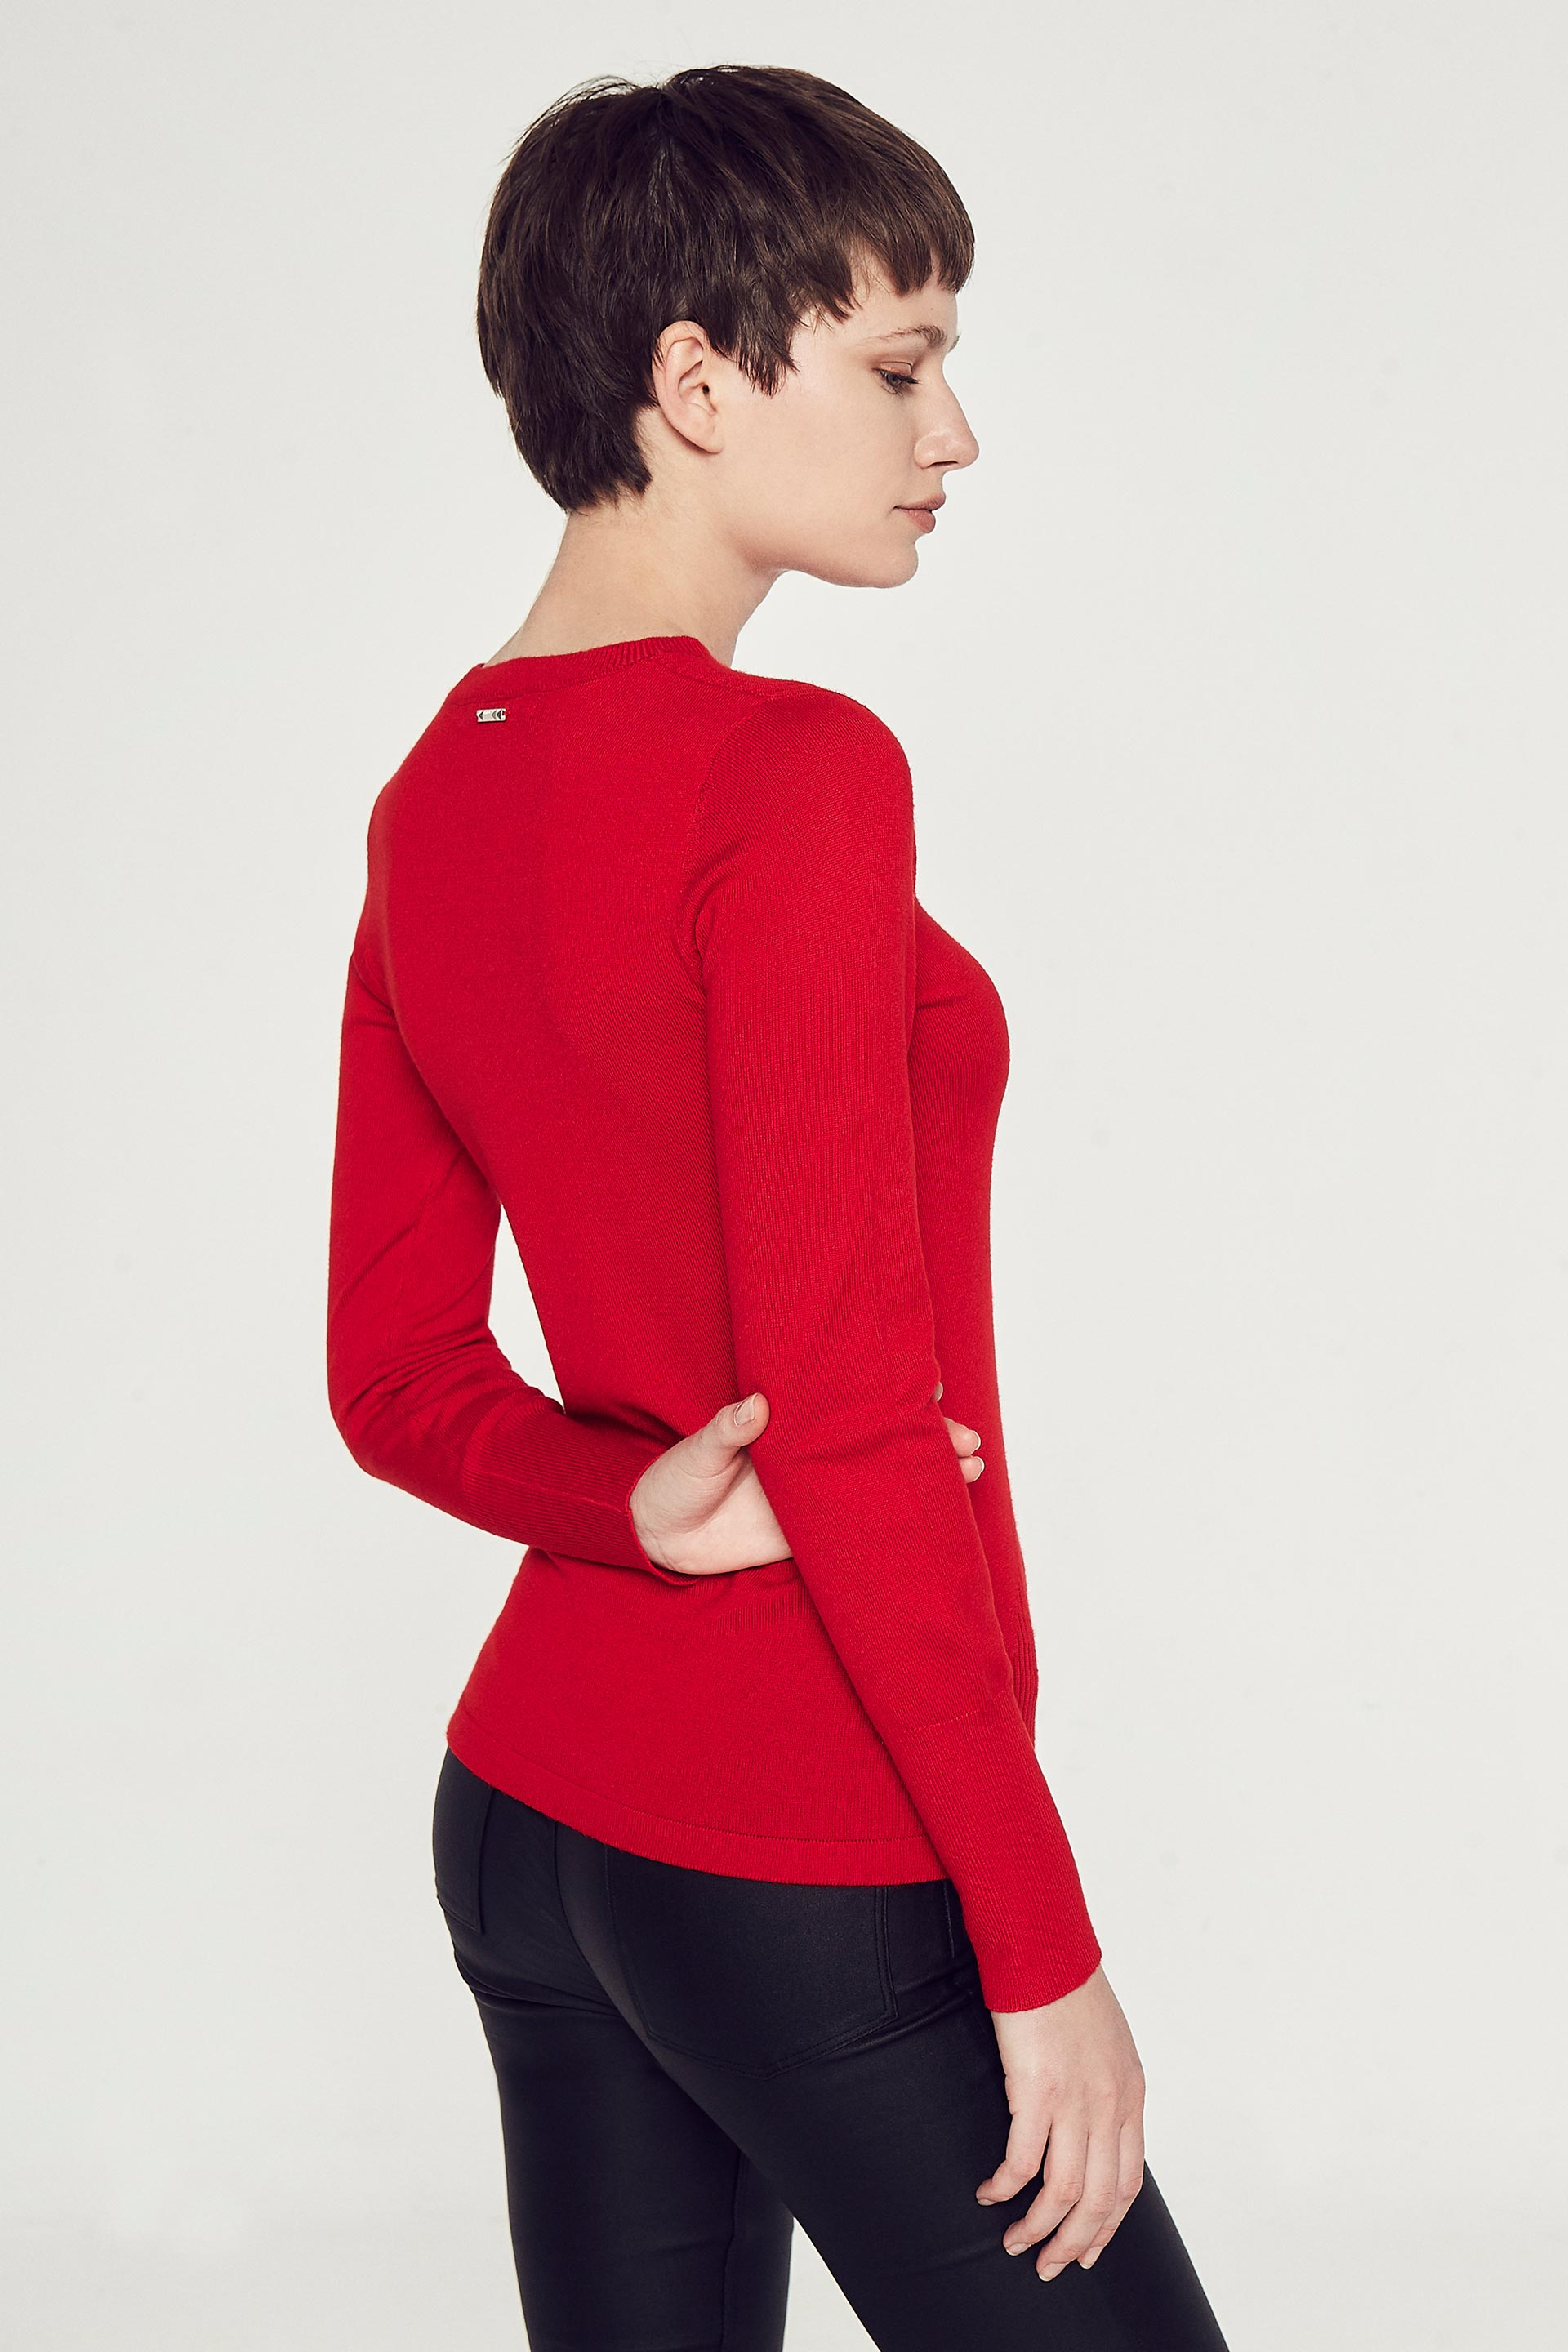 markova_sweater-muster_53-24-2020__picture-30158